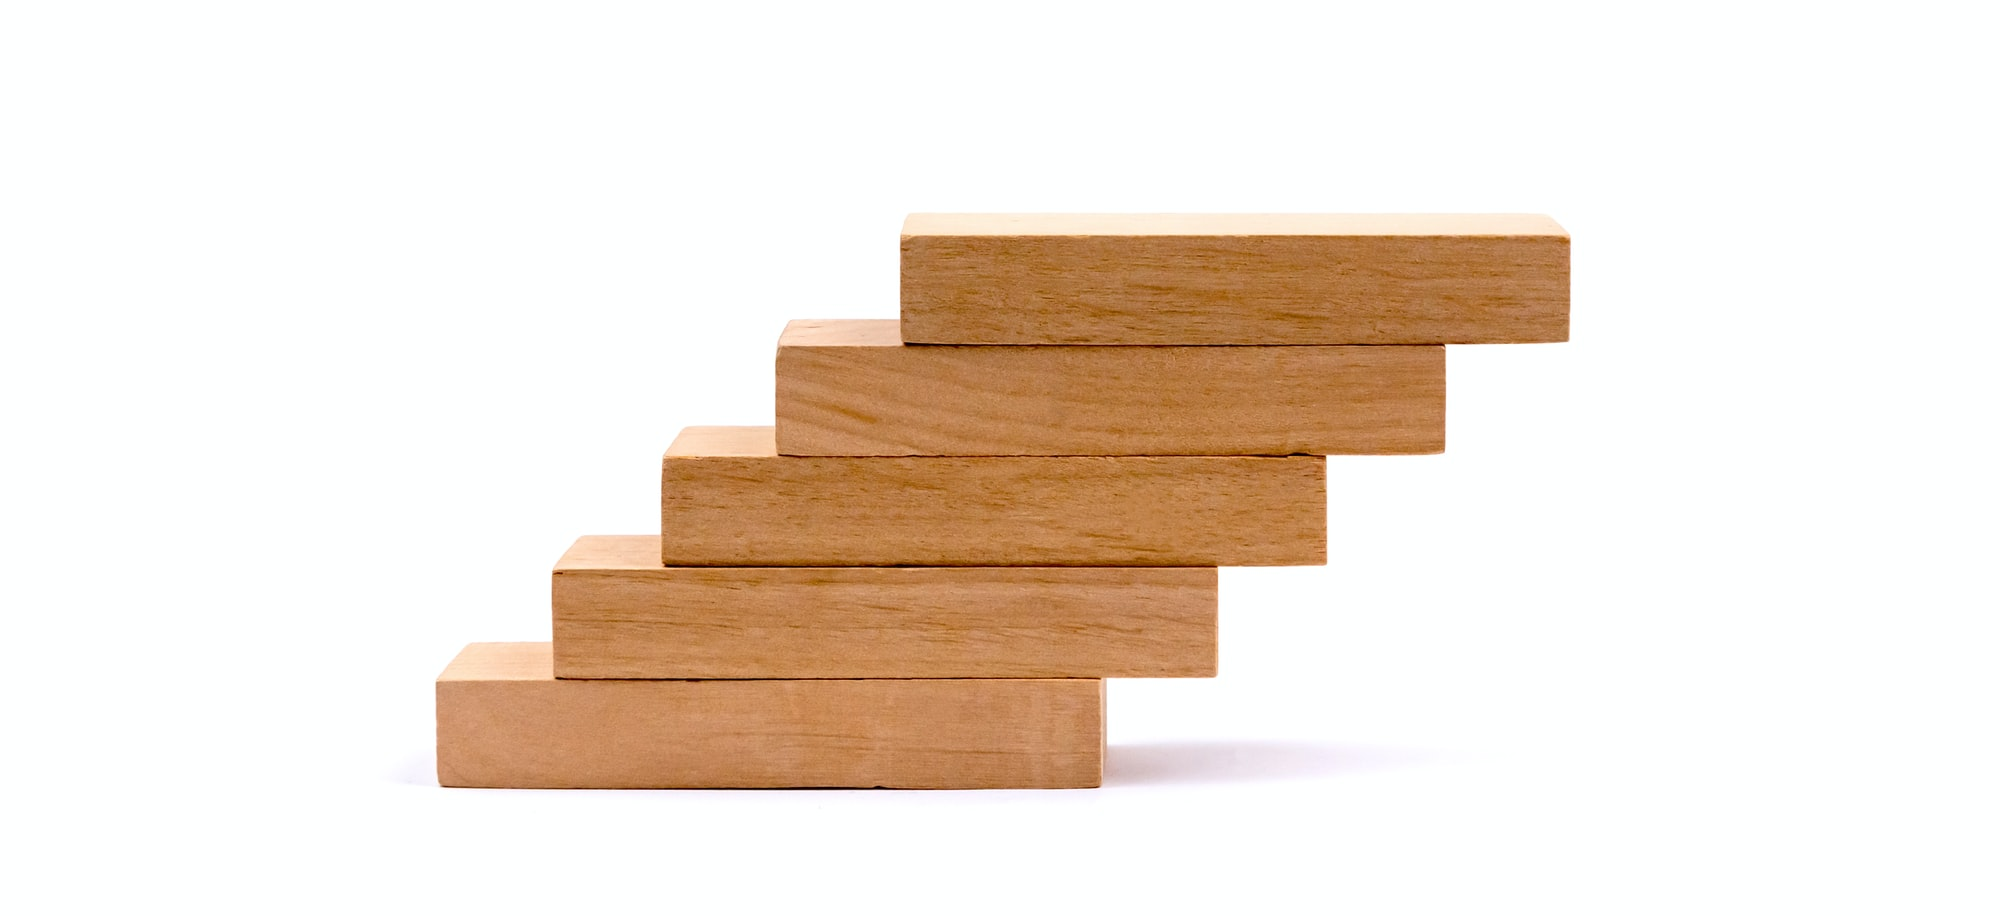 Wood block stacking as step stair, Business concept for growth success process